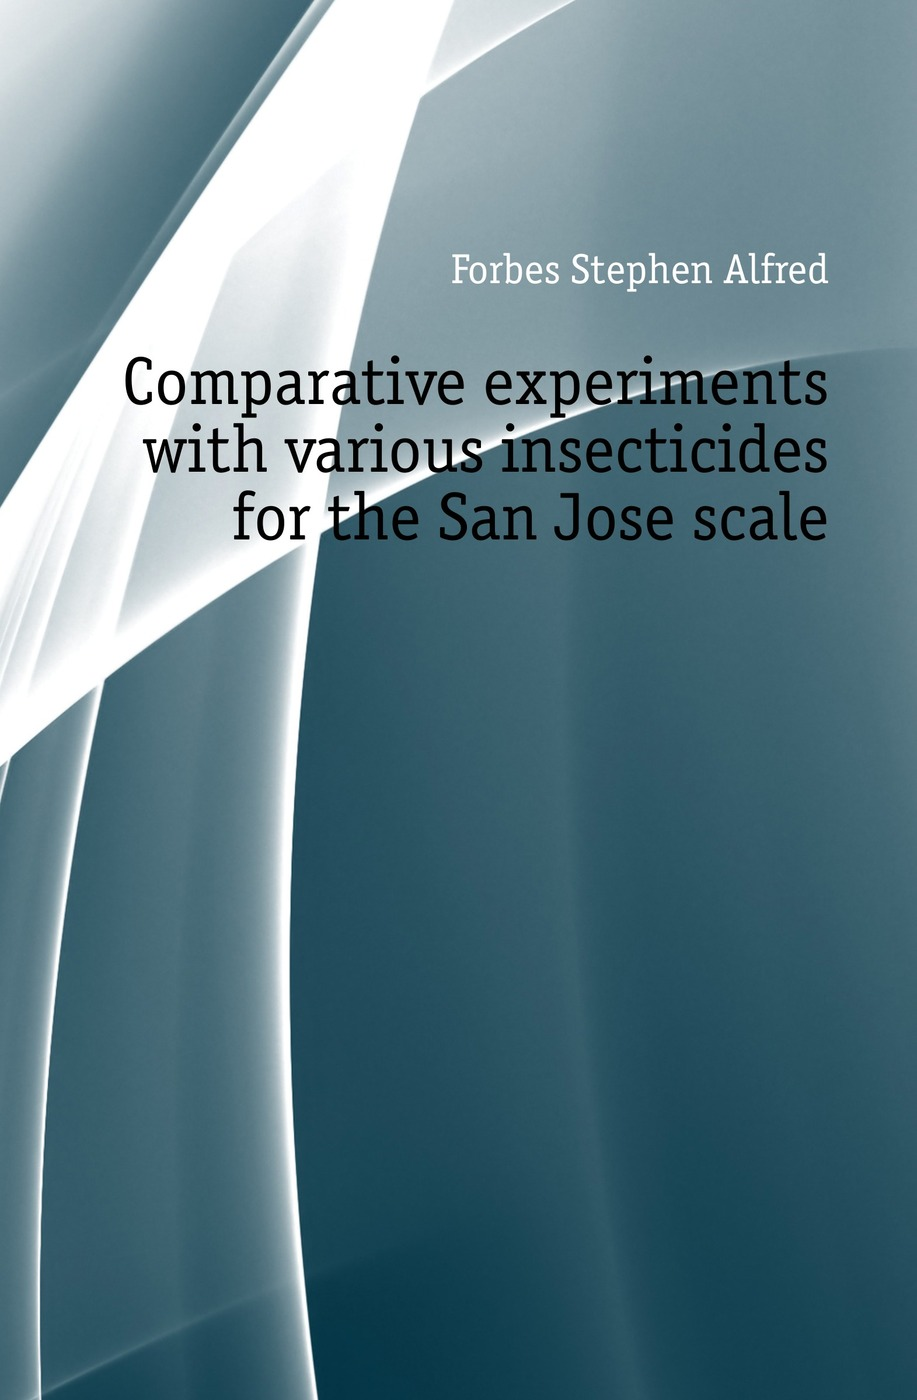 Forbes Stephen Alfred Comparative experiments with various insecticides for the San Jose scale